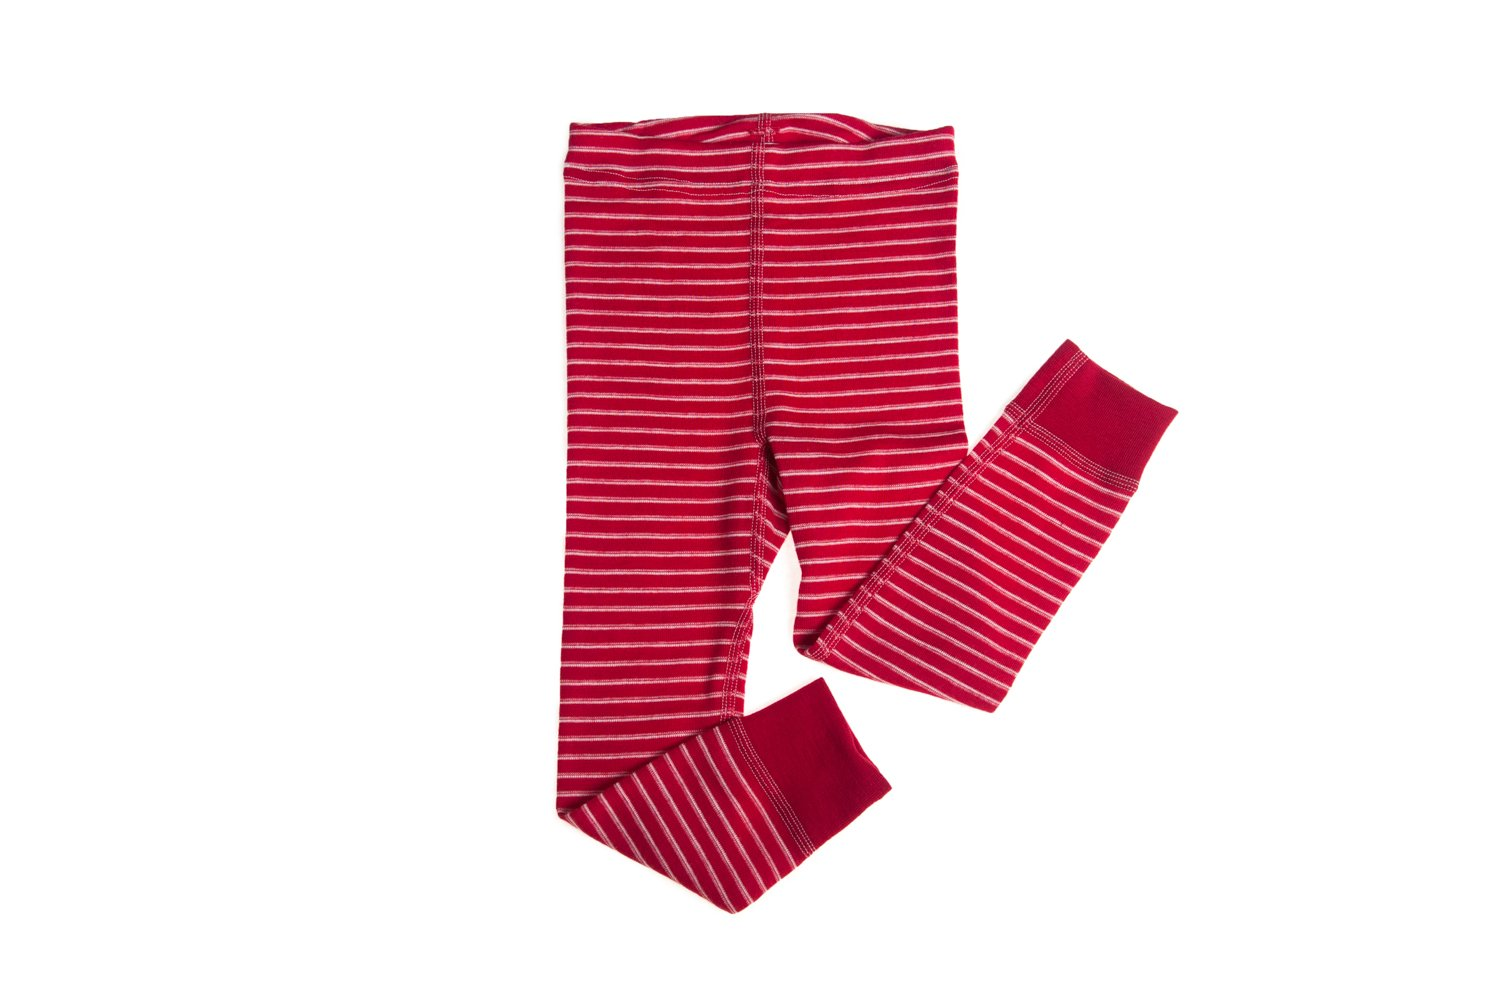 Hocosa of Switzerland Big Boys Organic Wool Long-Underwear Pants, Red/White Stripe, s. 164/14 Yr by Hocosa of Switzerland